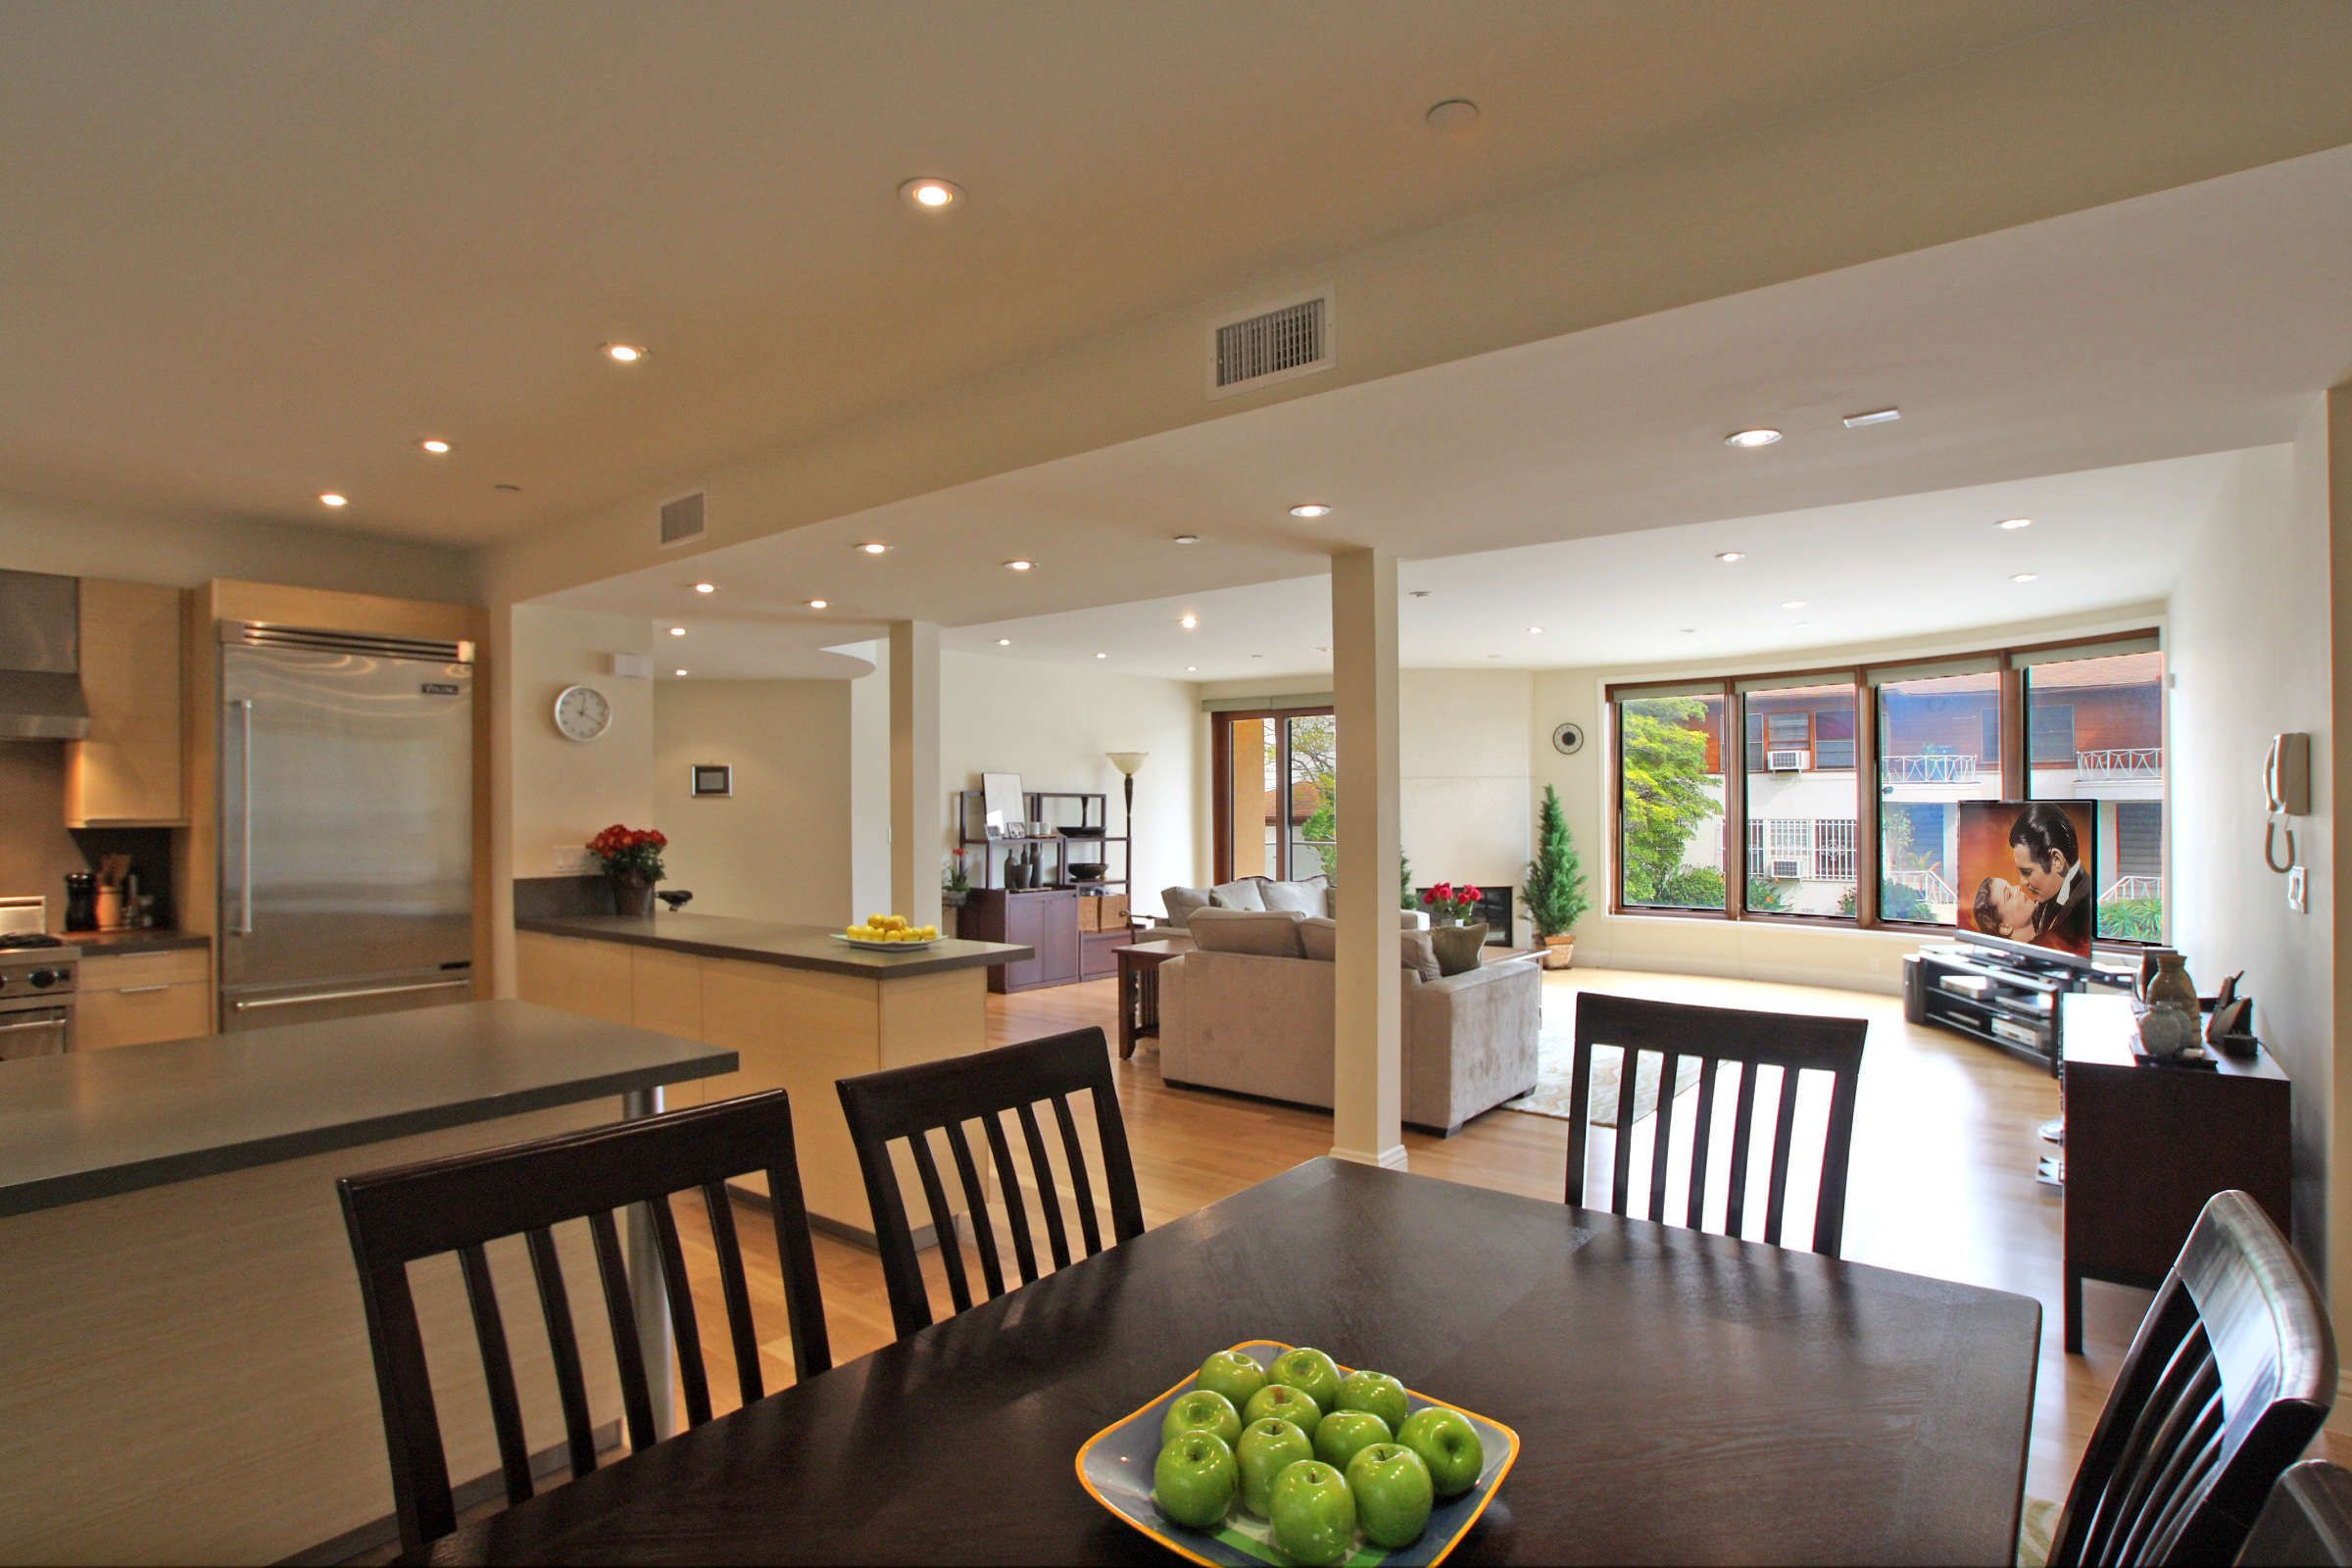 Living Dining Kitchen Room Design Ideas Pillars In Room  Ideas For The House  Pinterest  Room And House